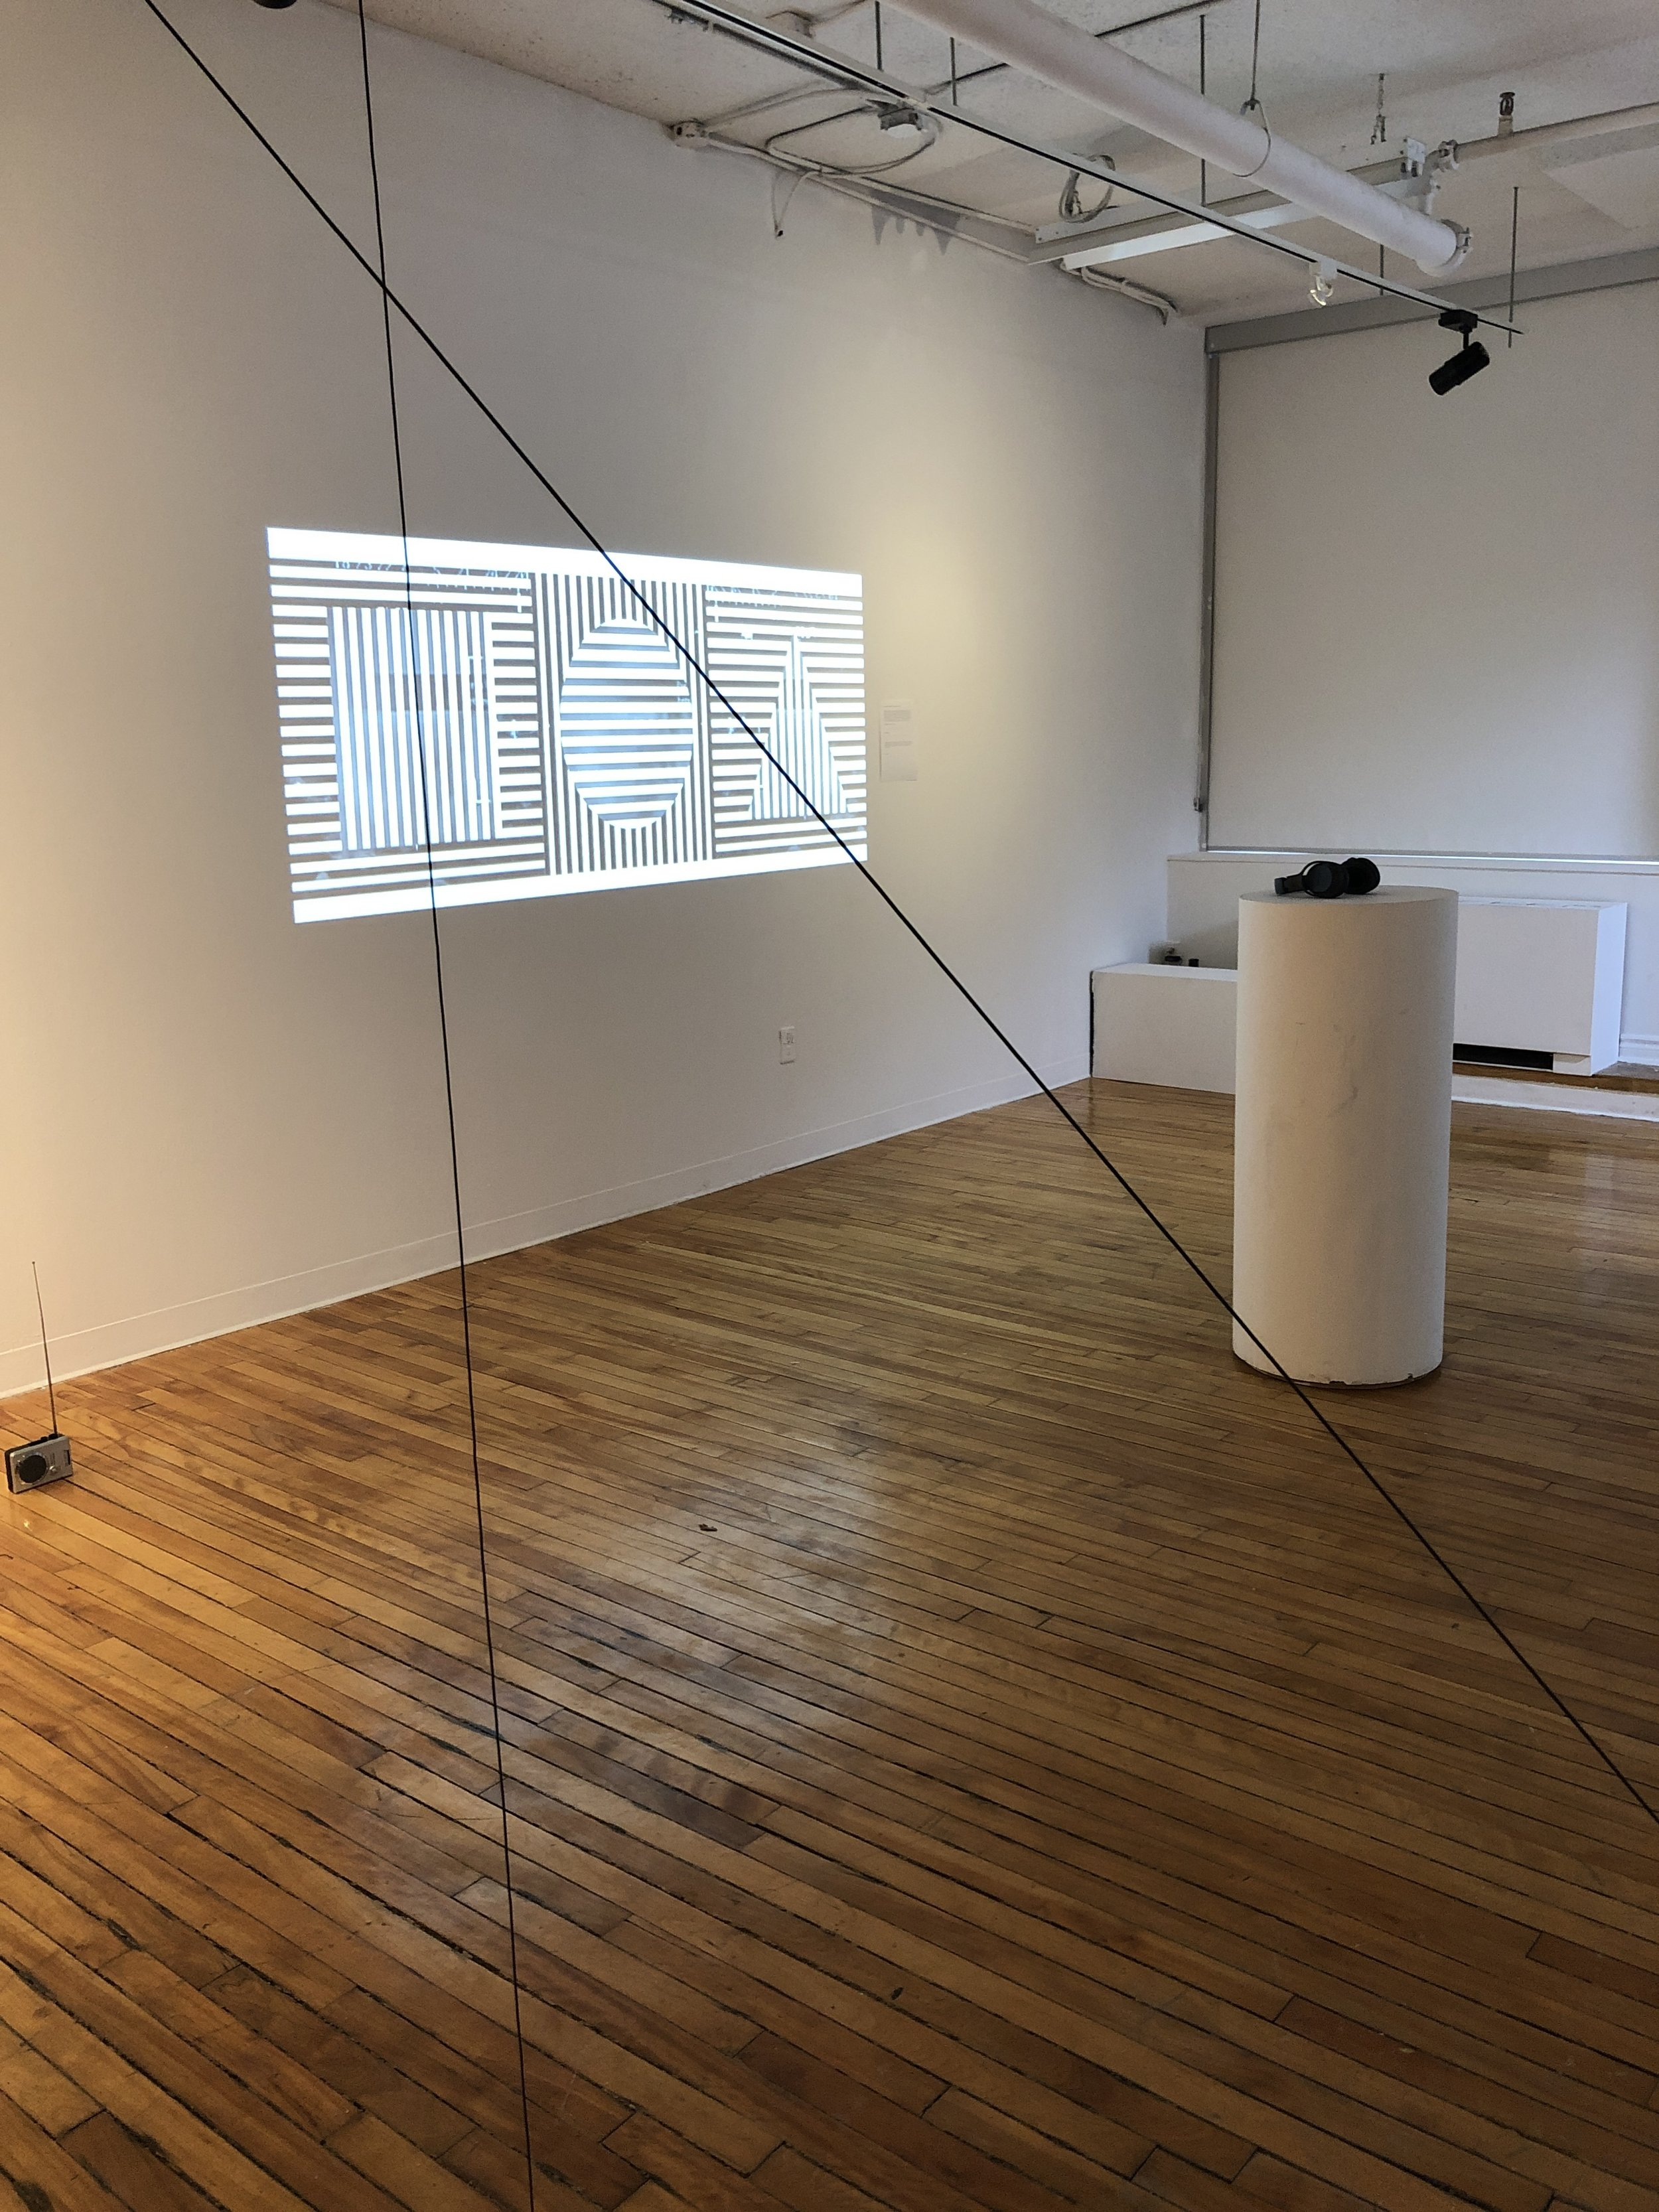 Installation within a group show.